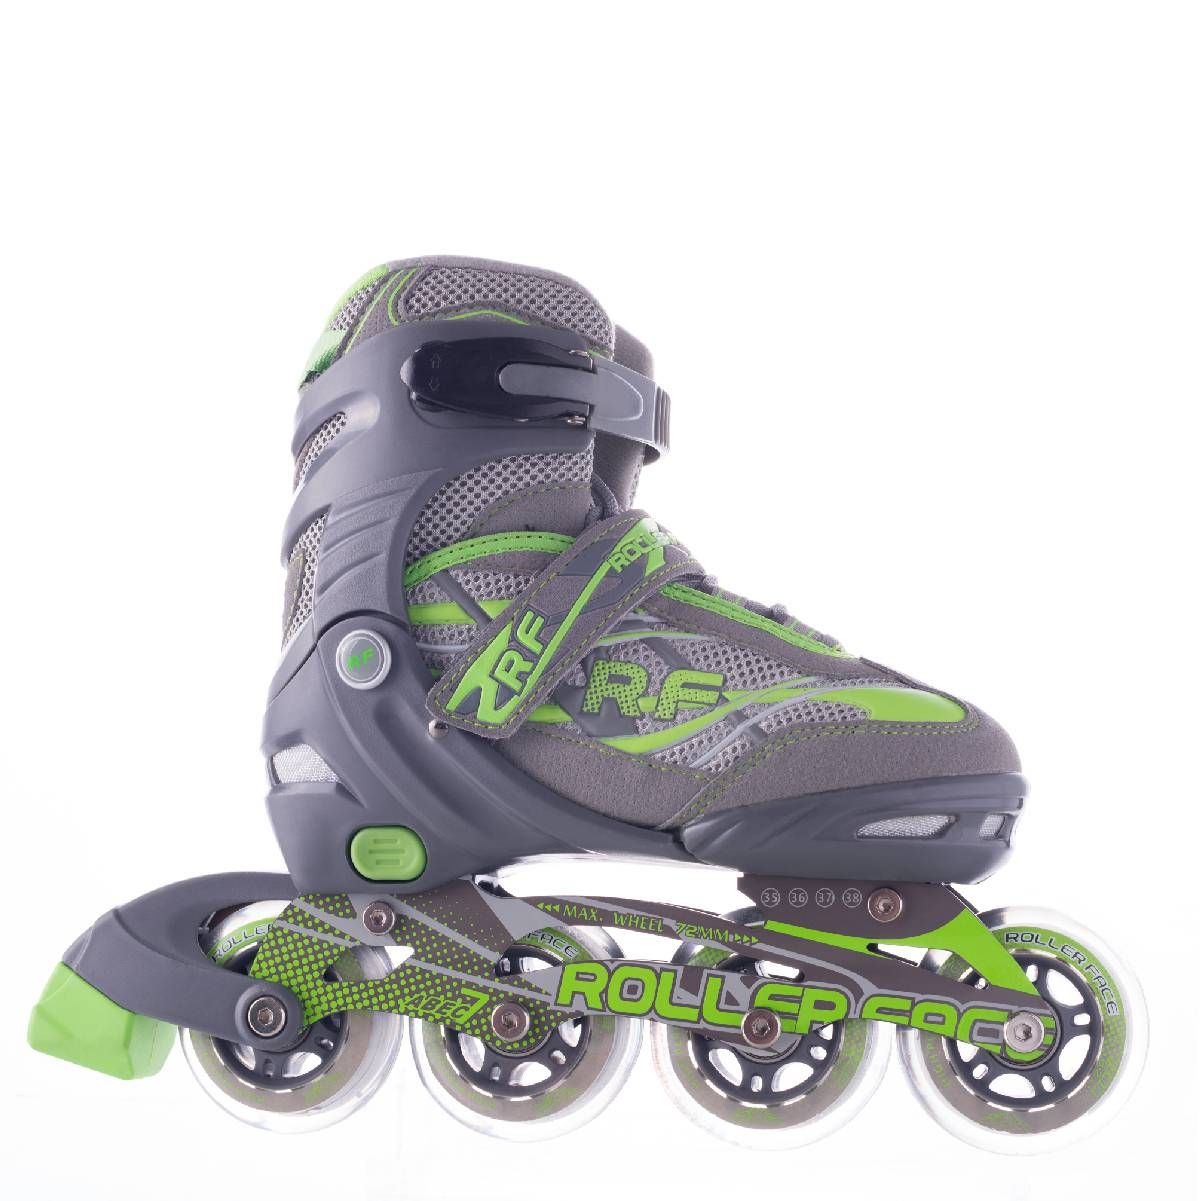 Patines - Patines Rollerface